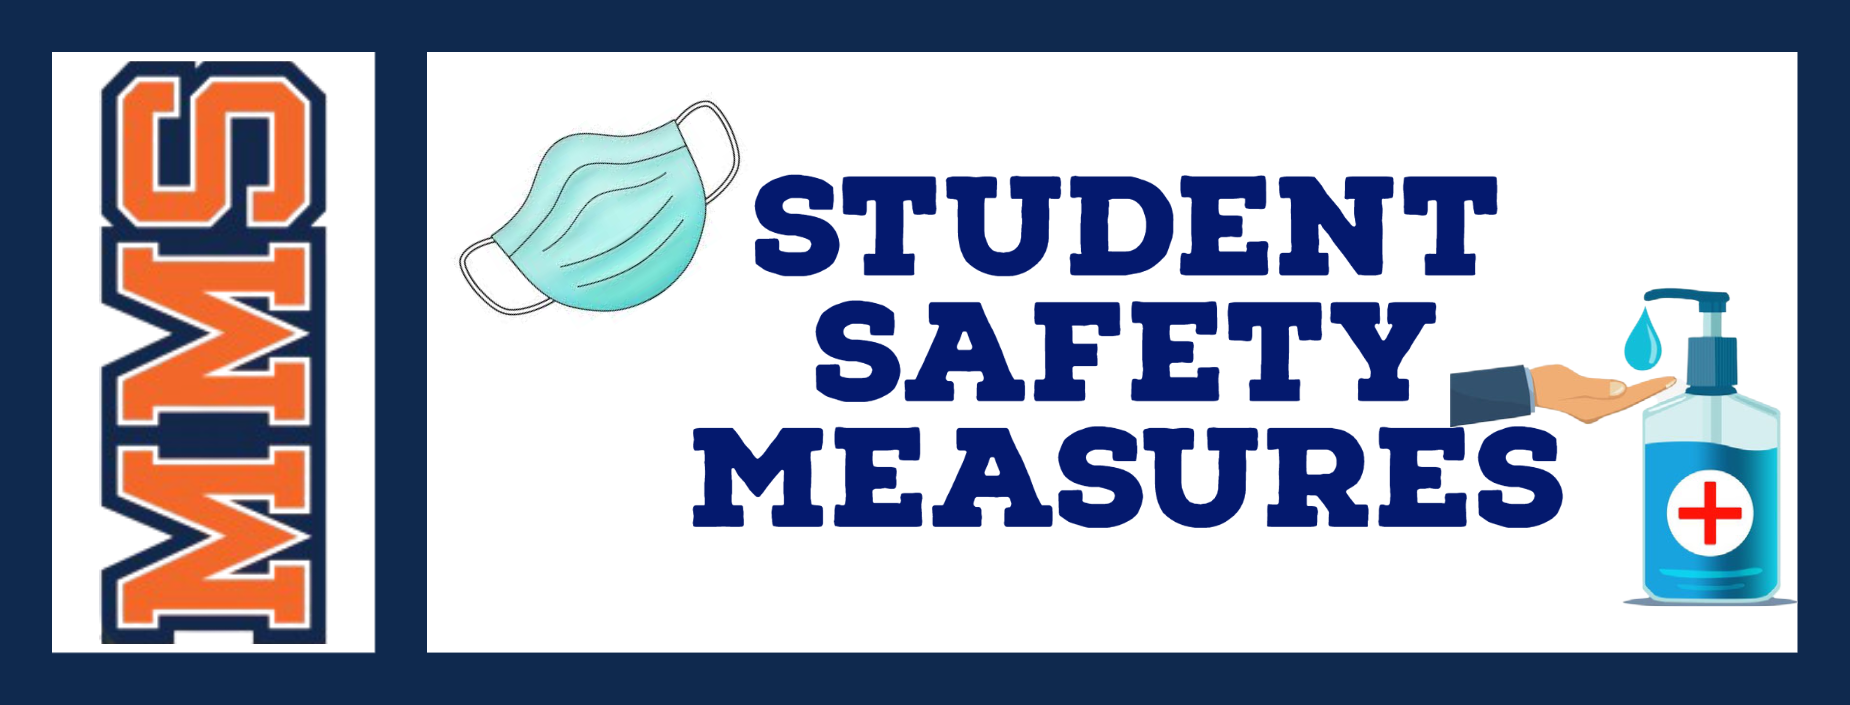 Student Safety Measures